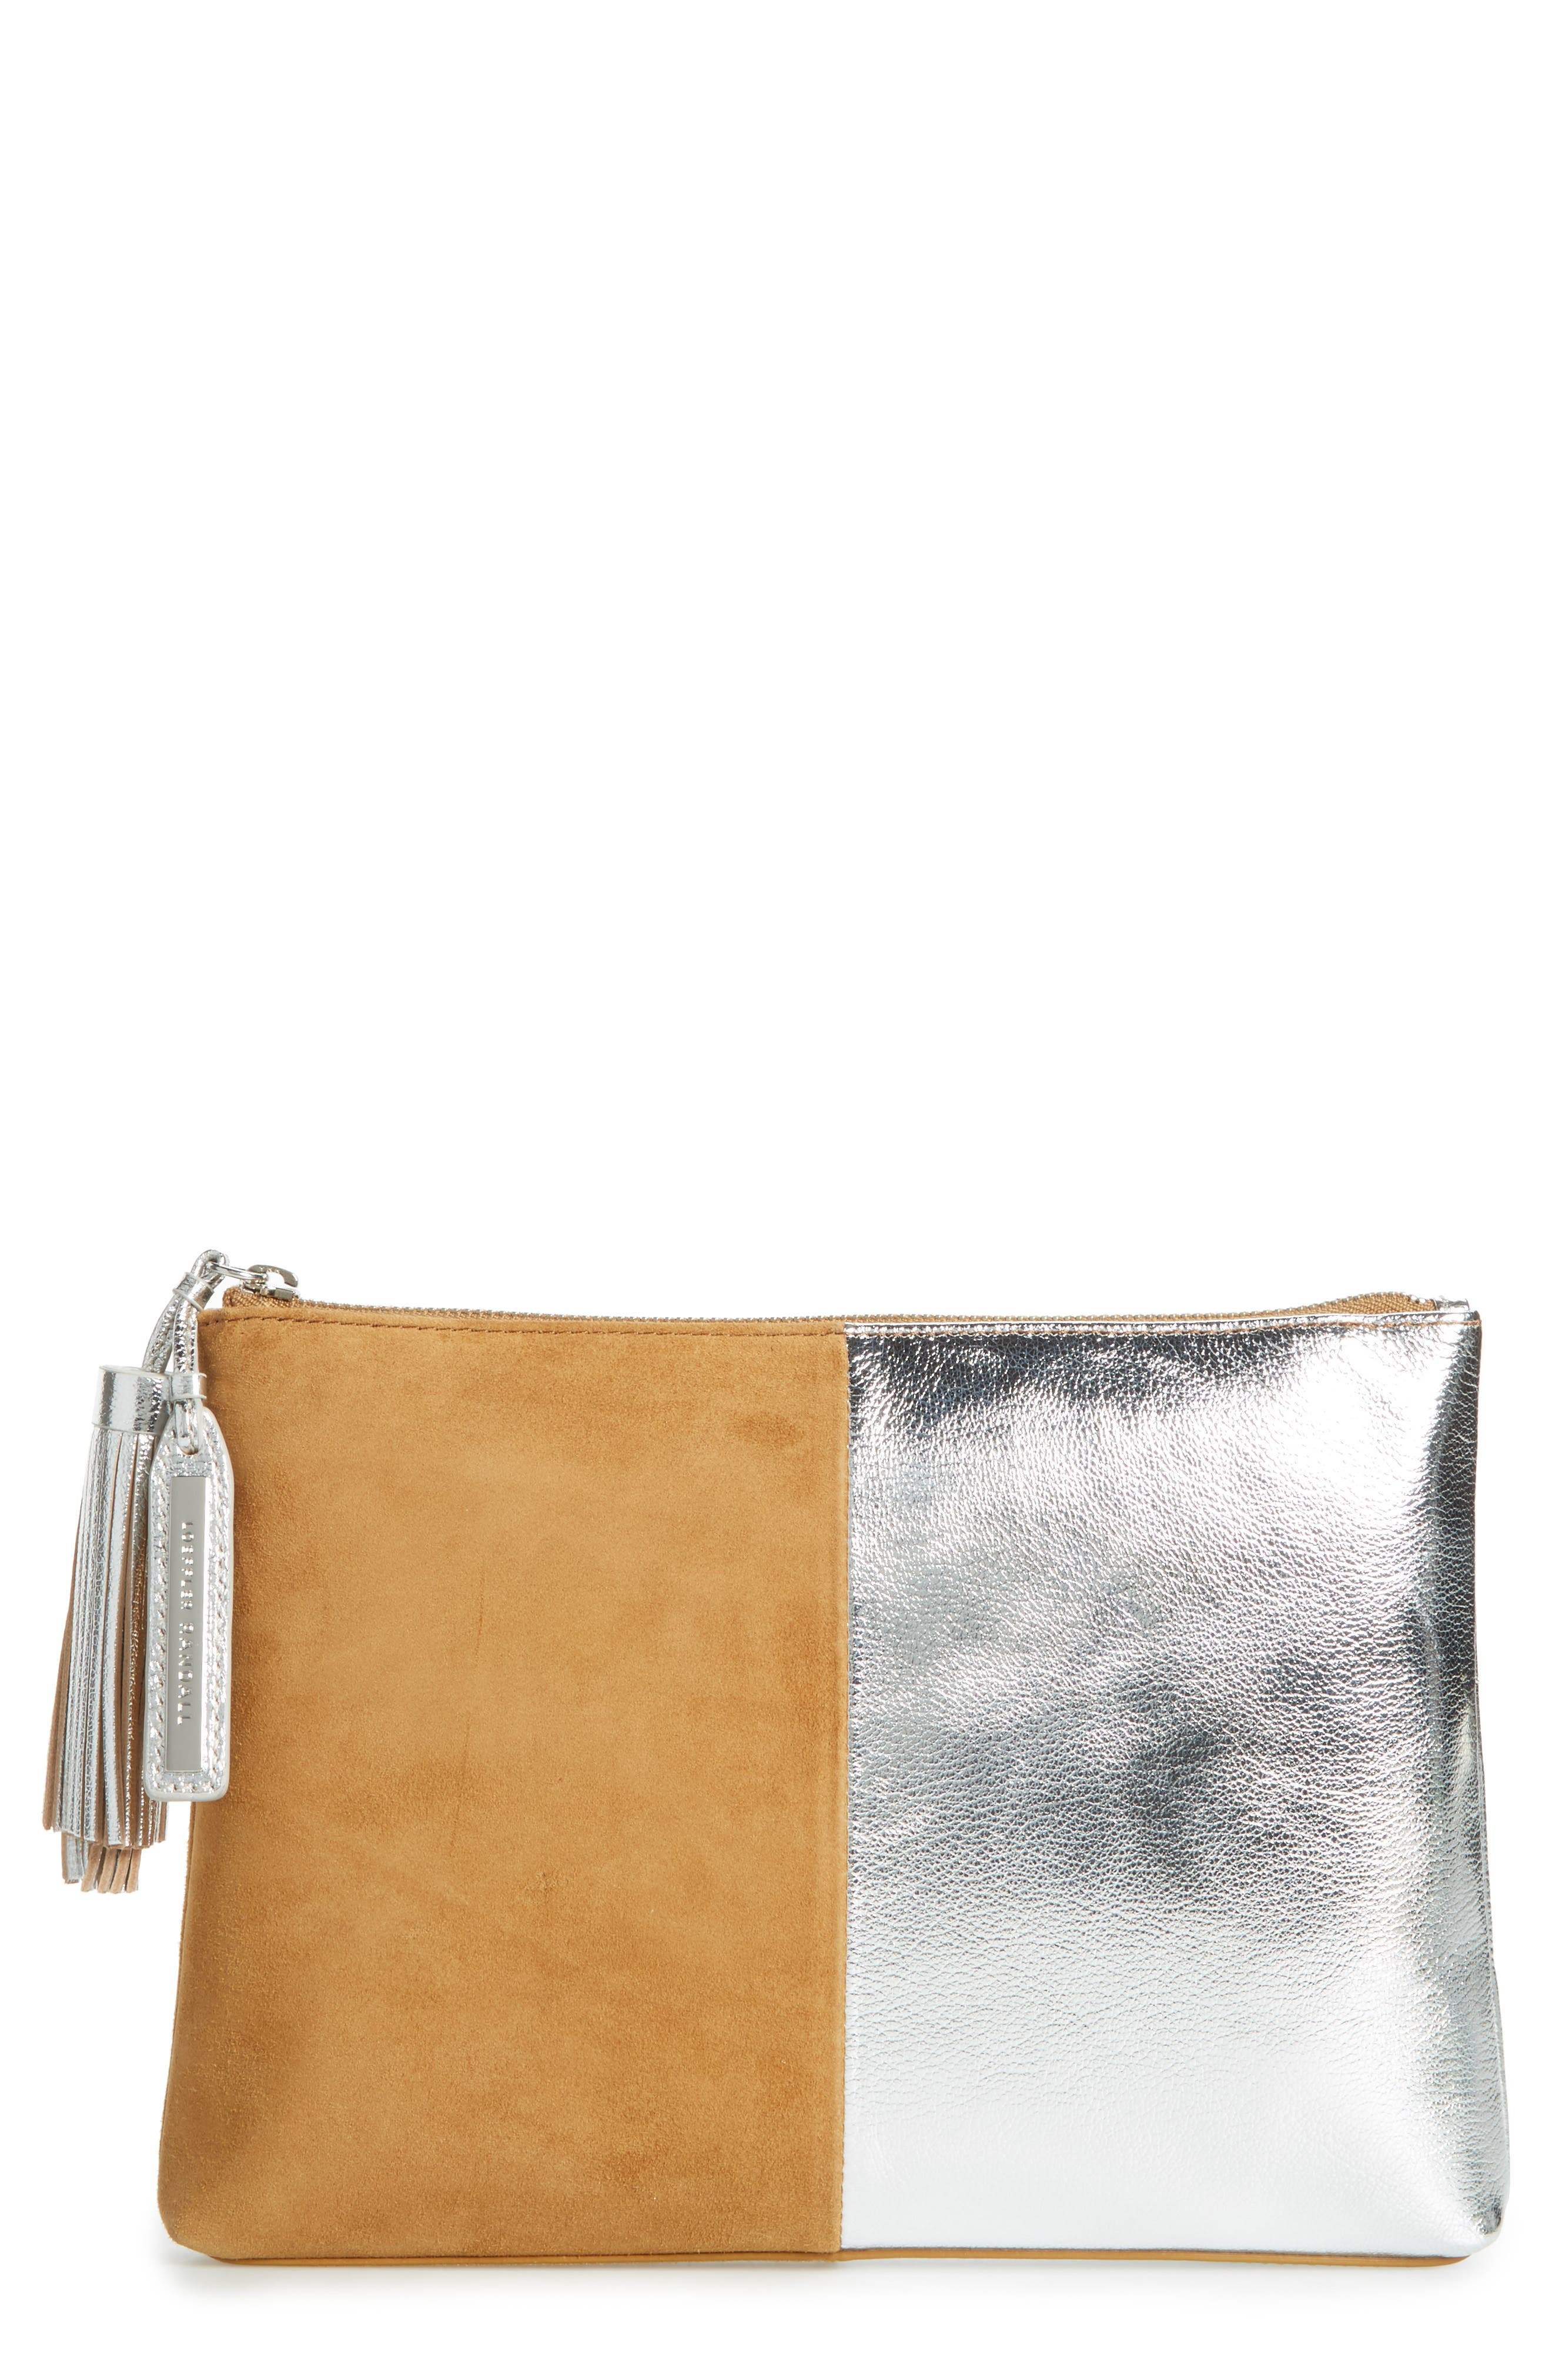 Tassel Metallic Leather & Suede Pouch,                         Main,                         color, 269